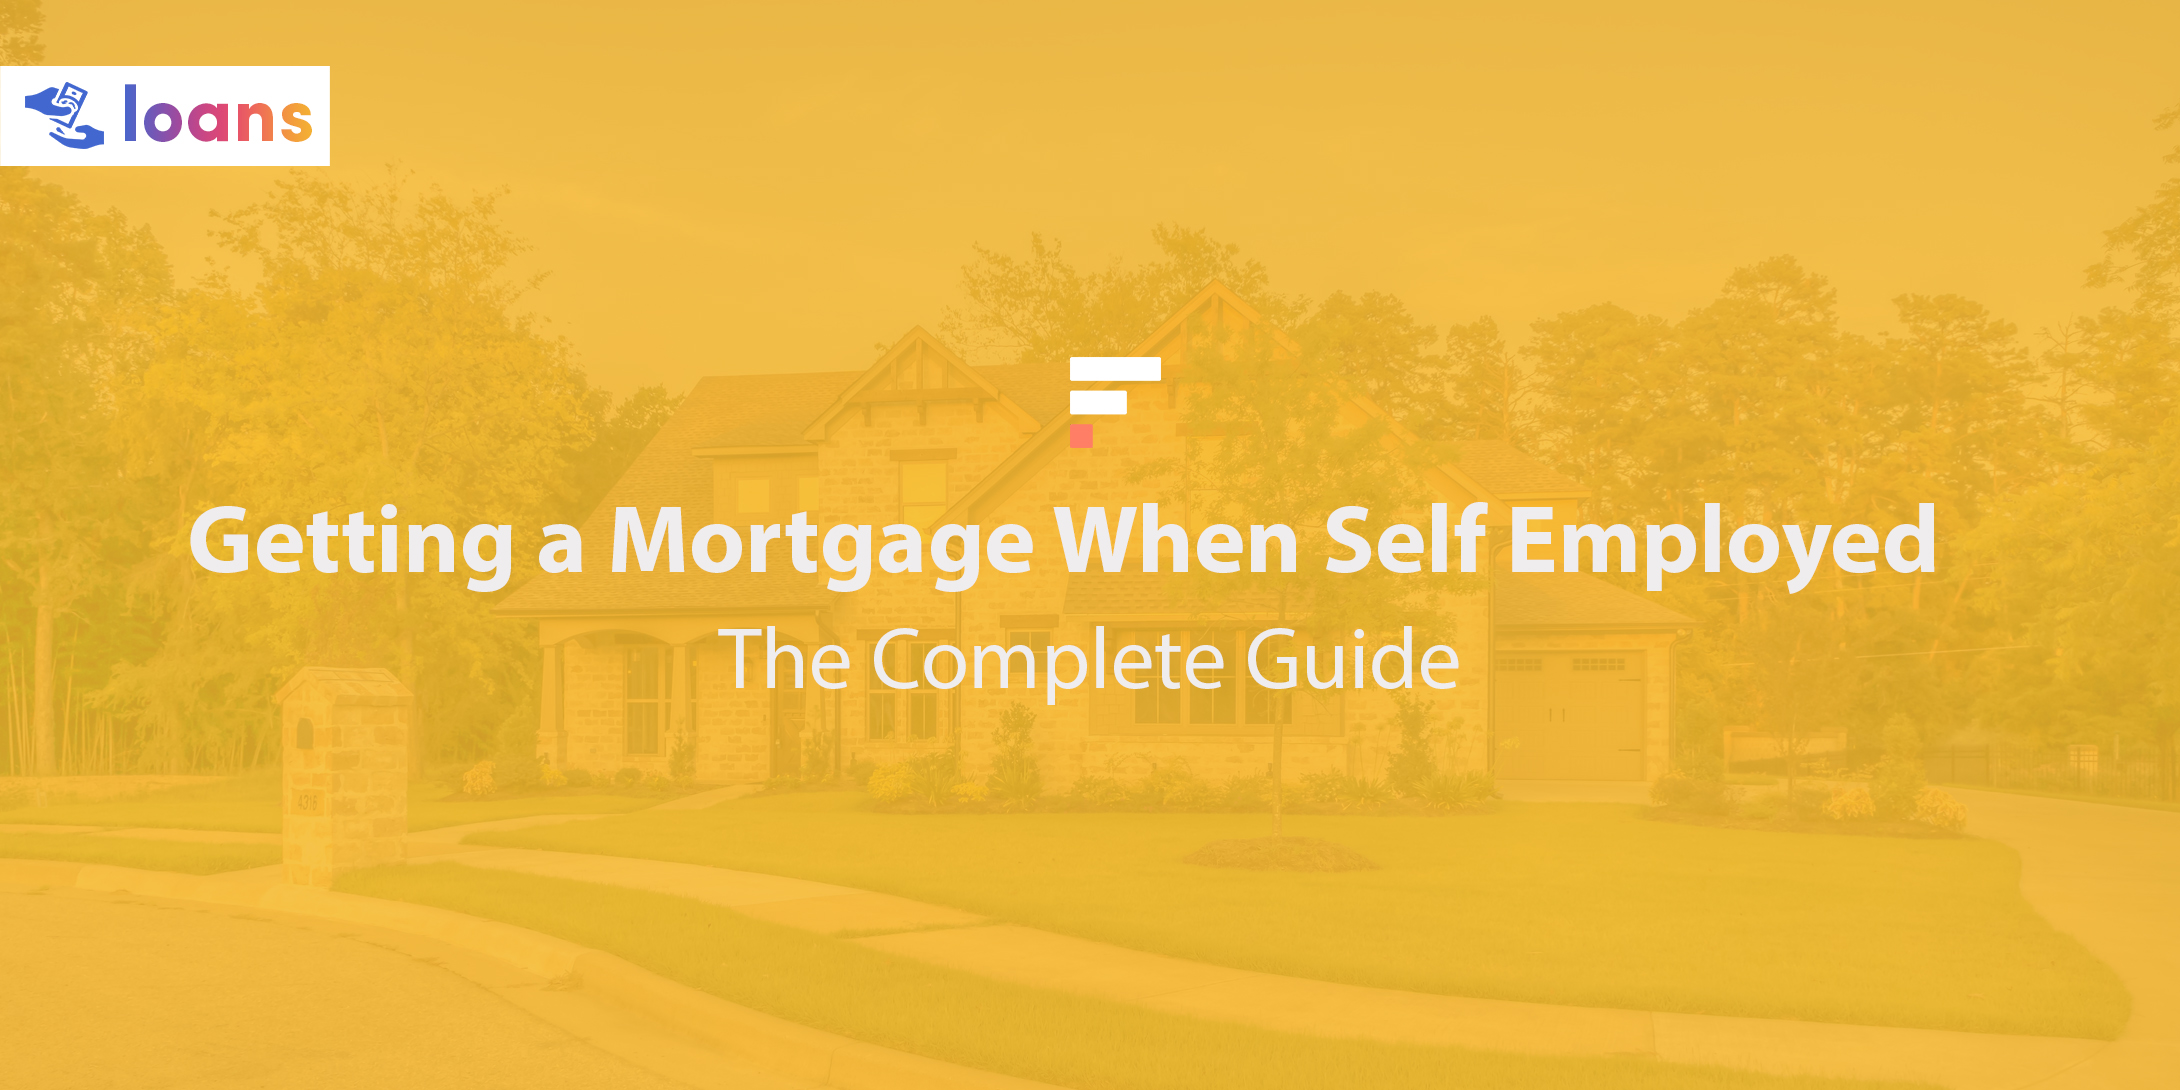 Getting a mortgage when self employed